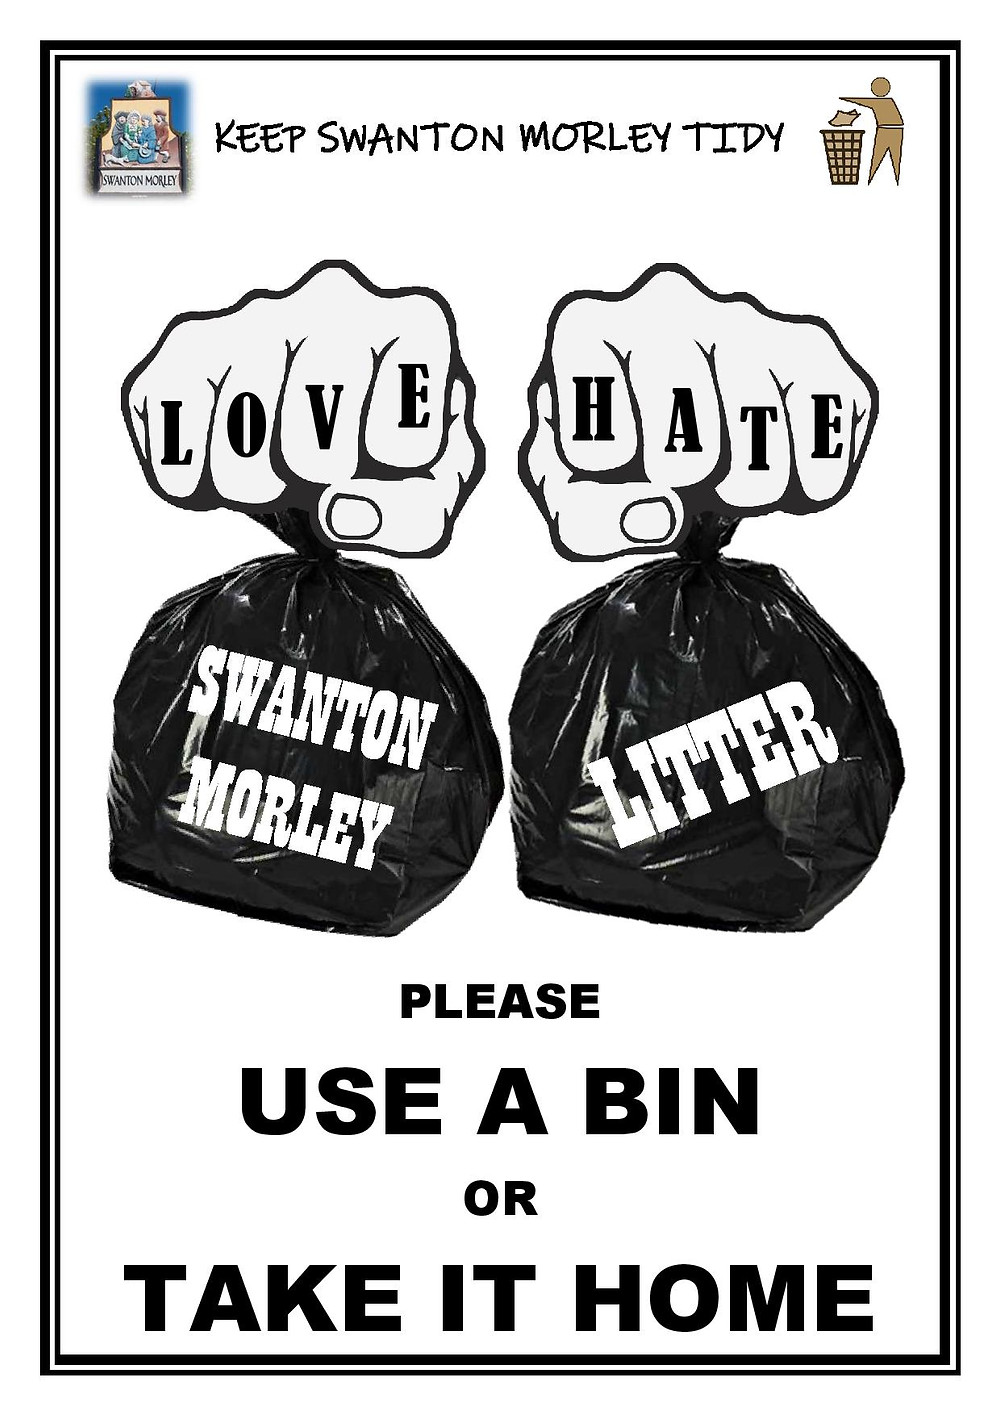 Swanton Morley litter campaign poster